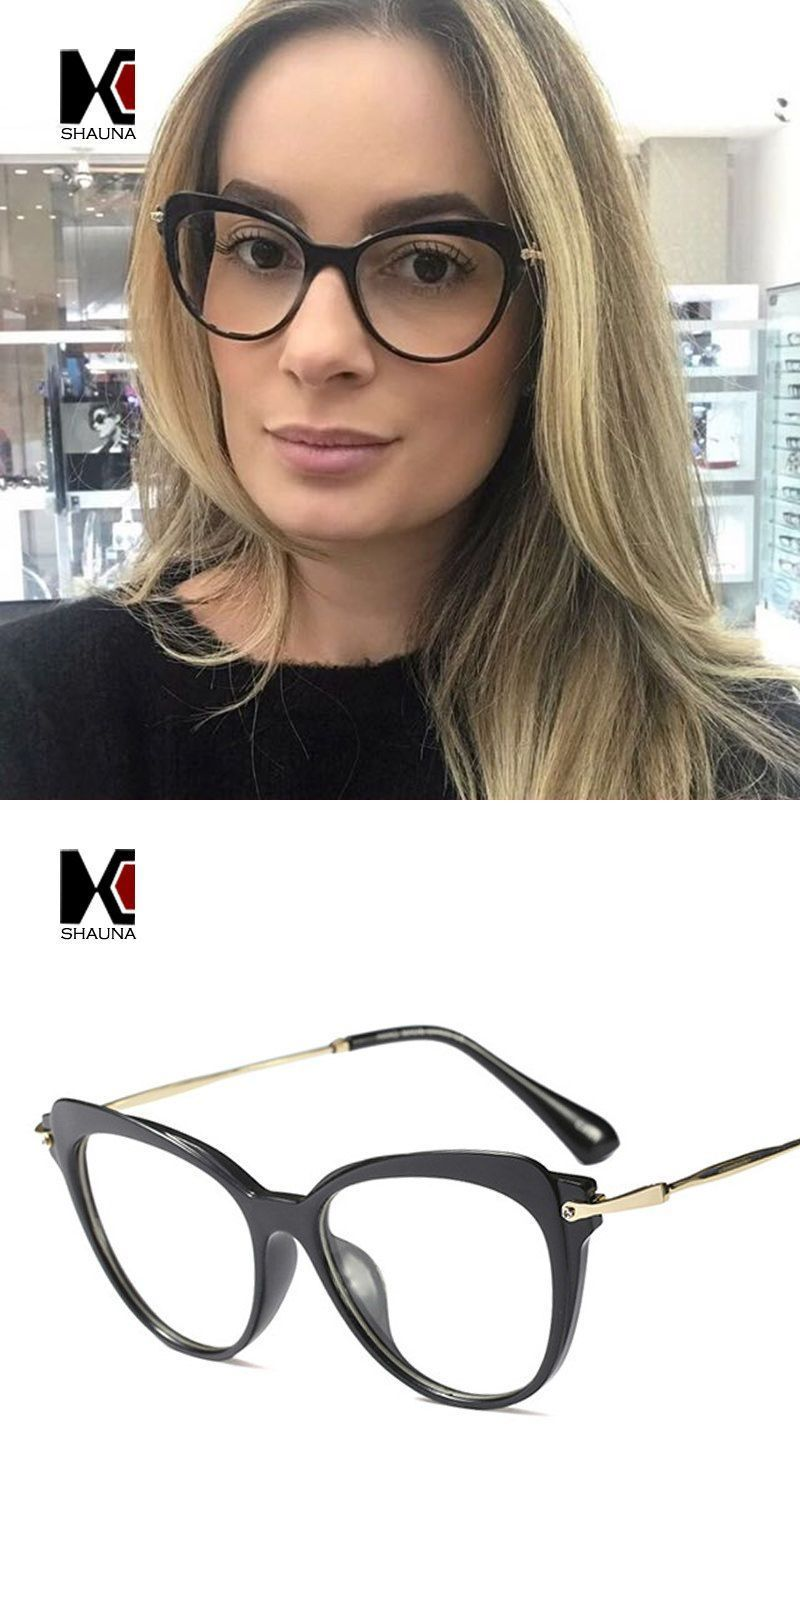 9164e5895a Fashion women cat eye glasses frame anti-blue rays fashion ladies reading  eyeglasses uv400  eyewear  accessories  frames  solid  women  plastic  come   with ...